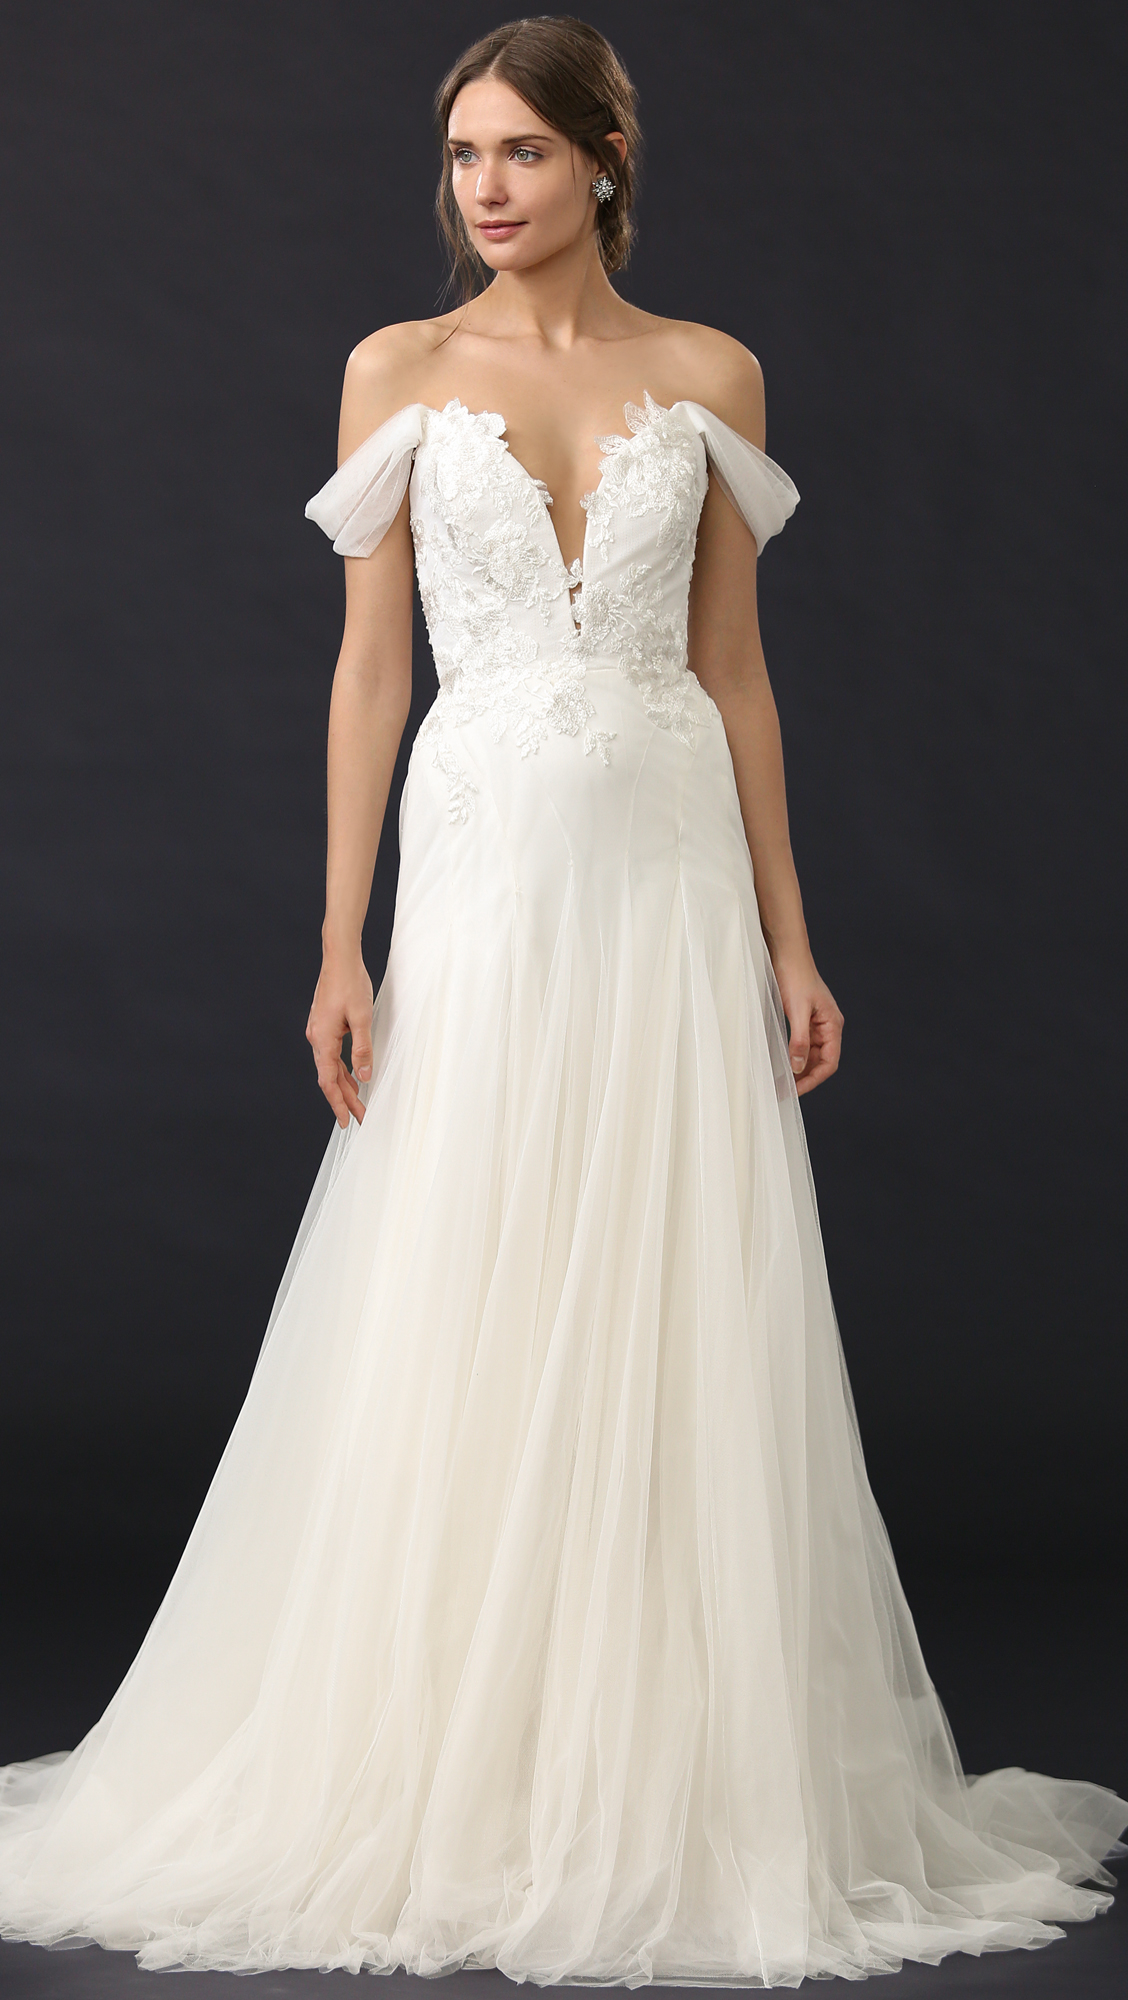 Lyst - Marchesa Hyacinth Gown With Plunging Neckline in White